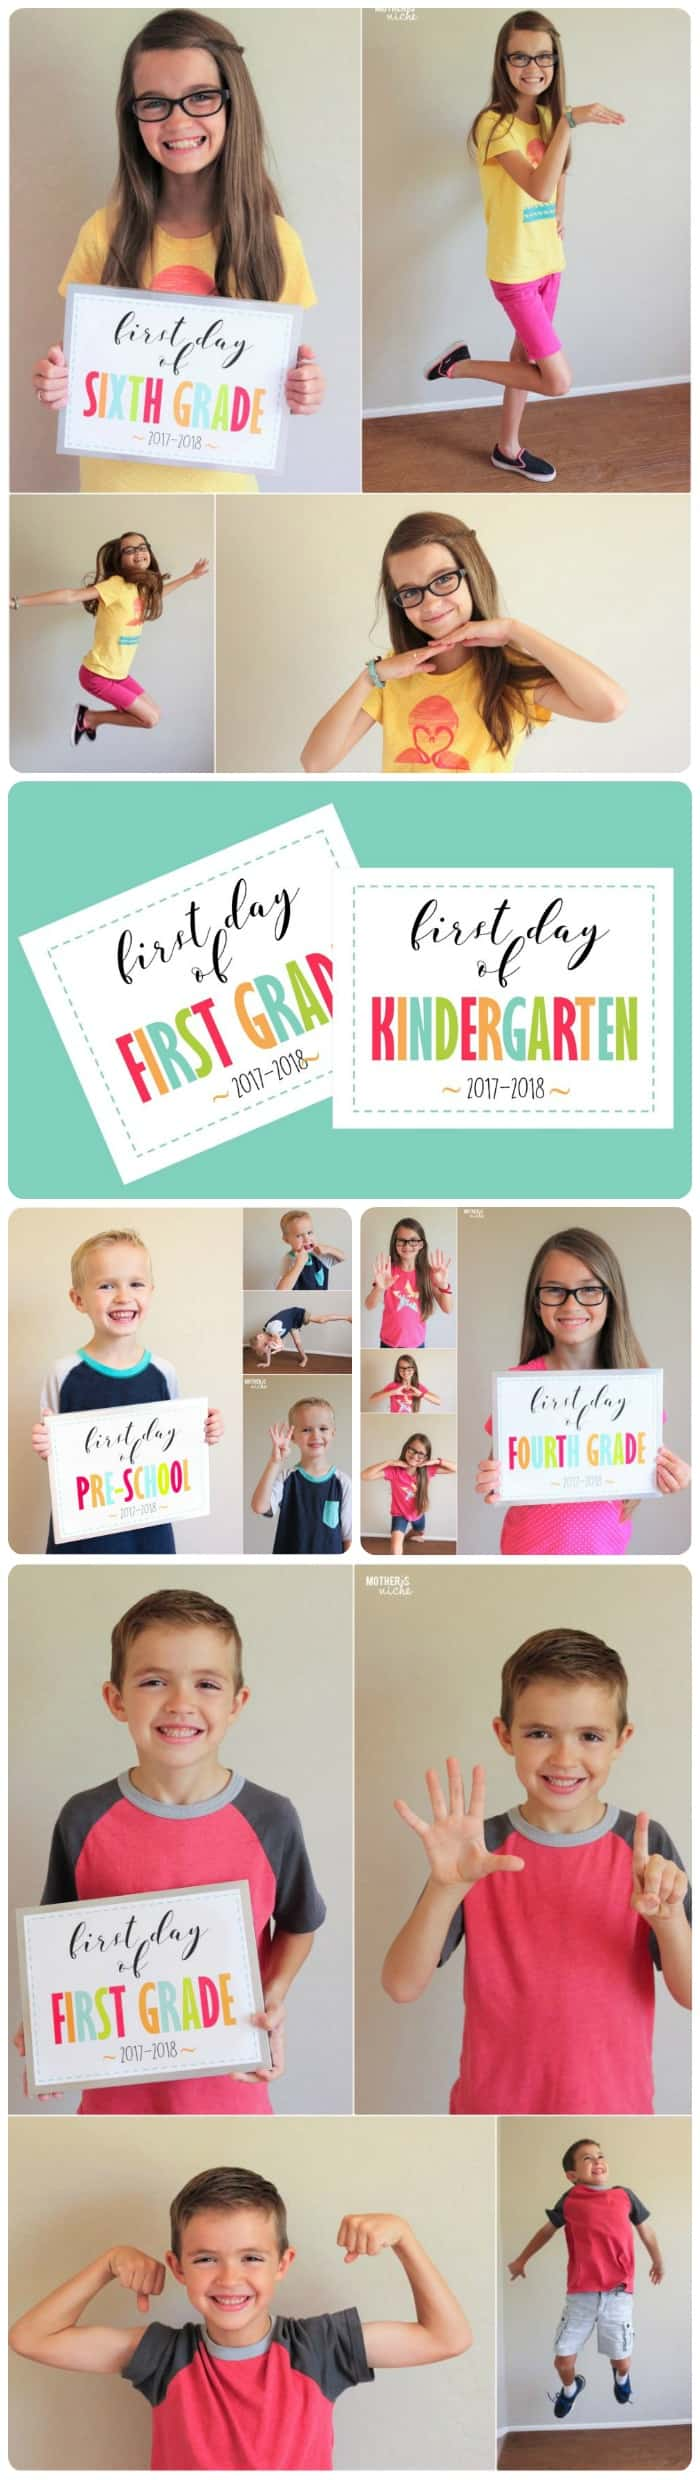 First Day of Kindergarten Sign up through 12th grade sign